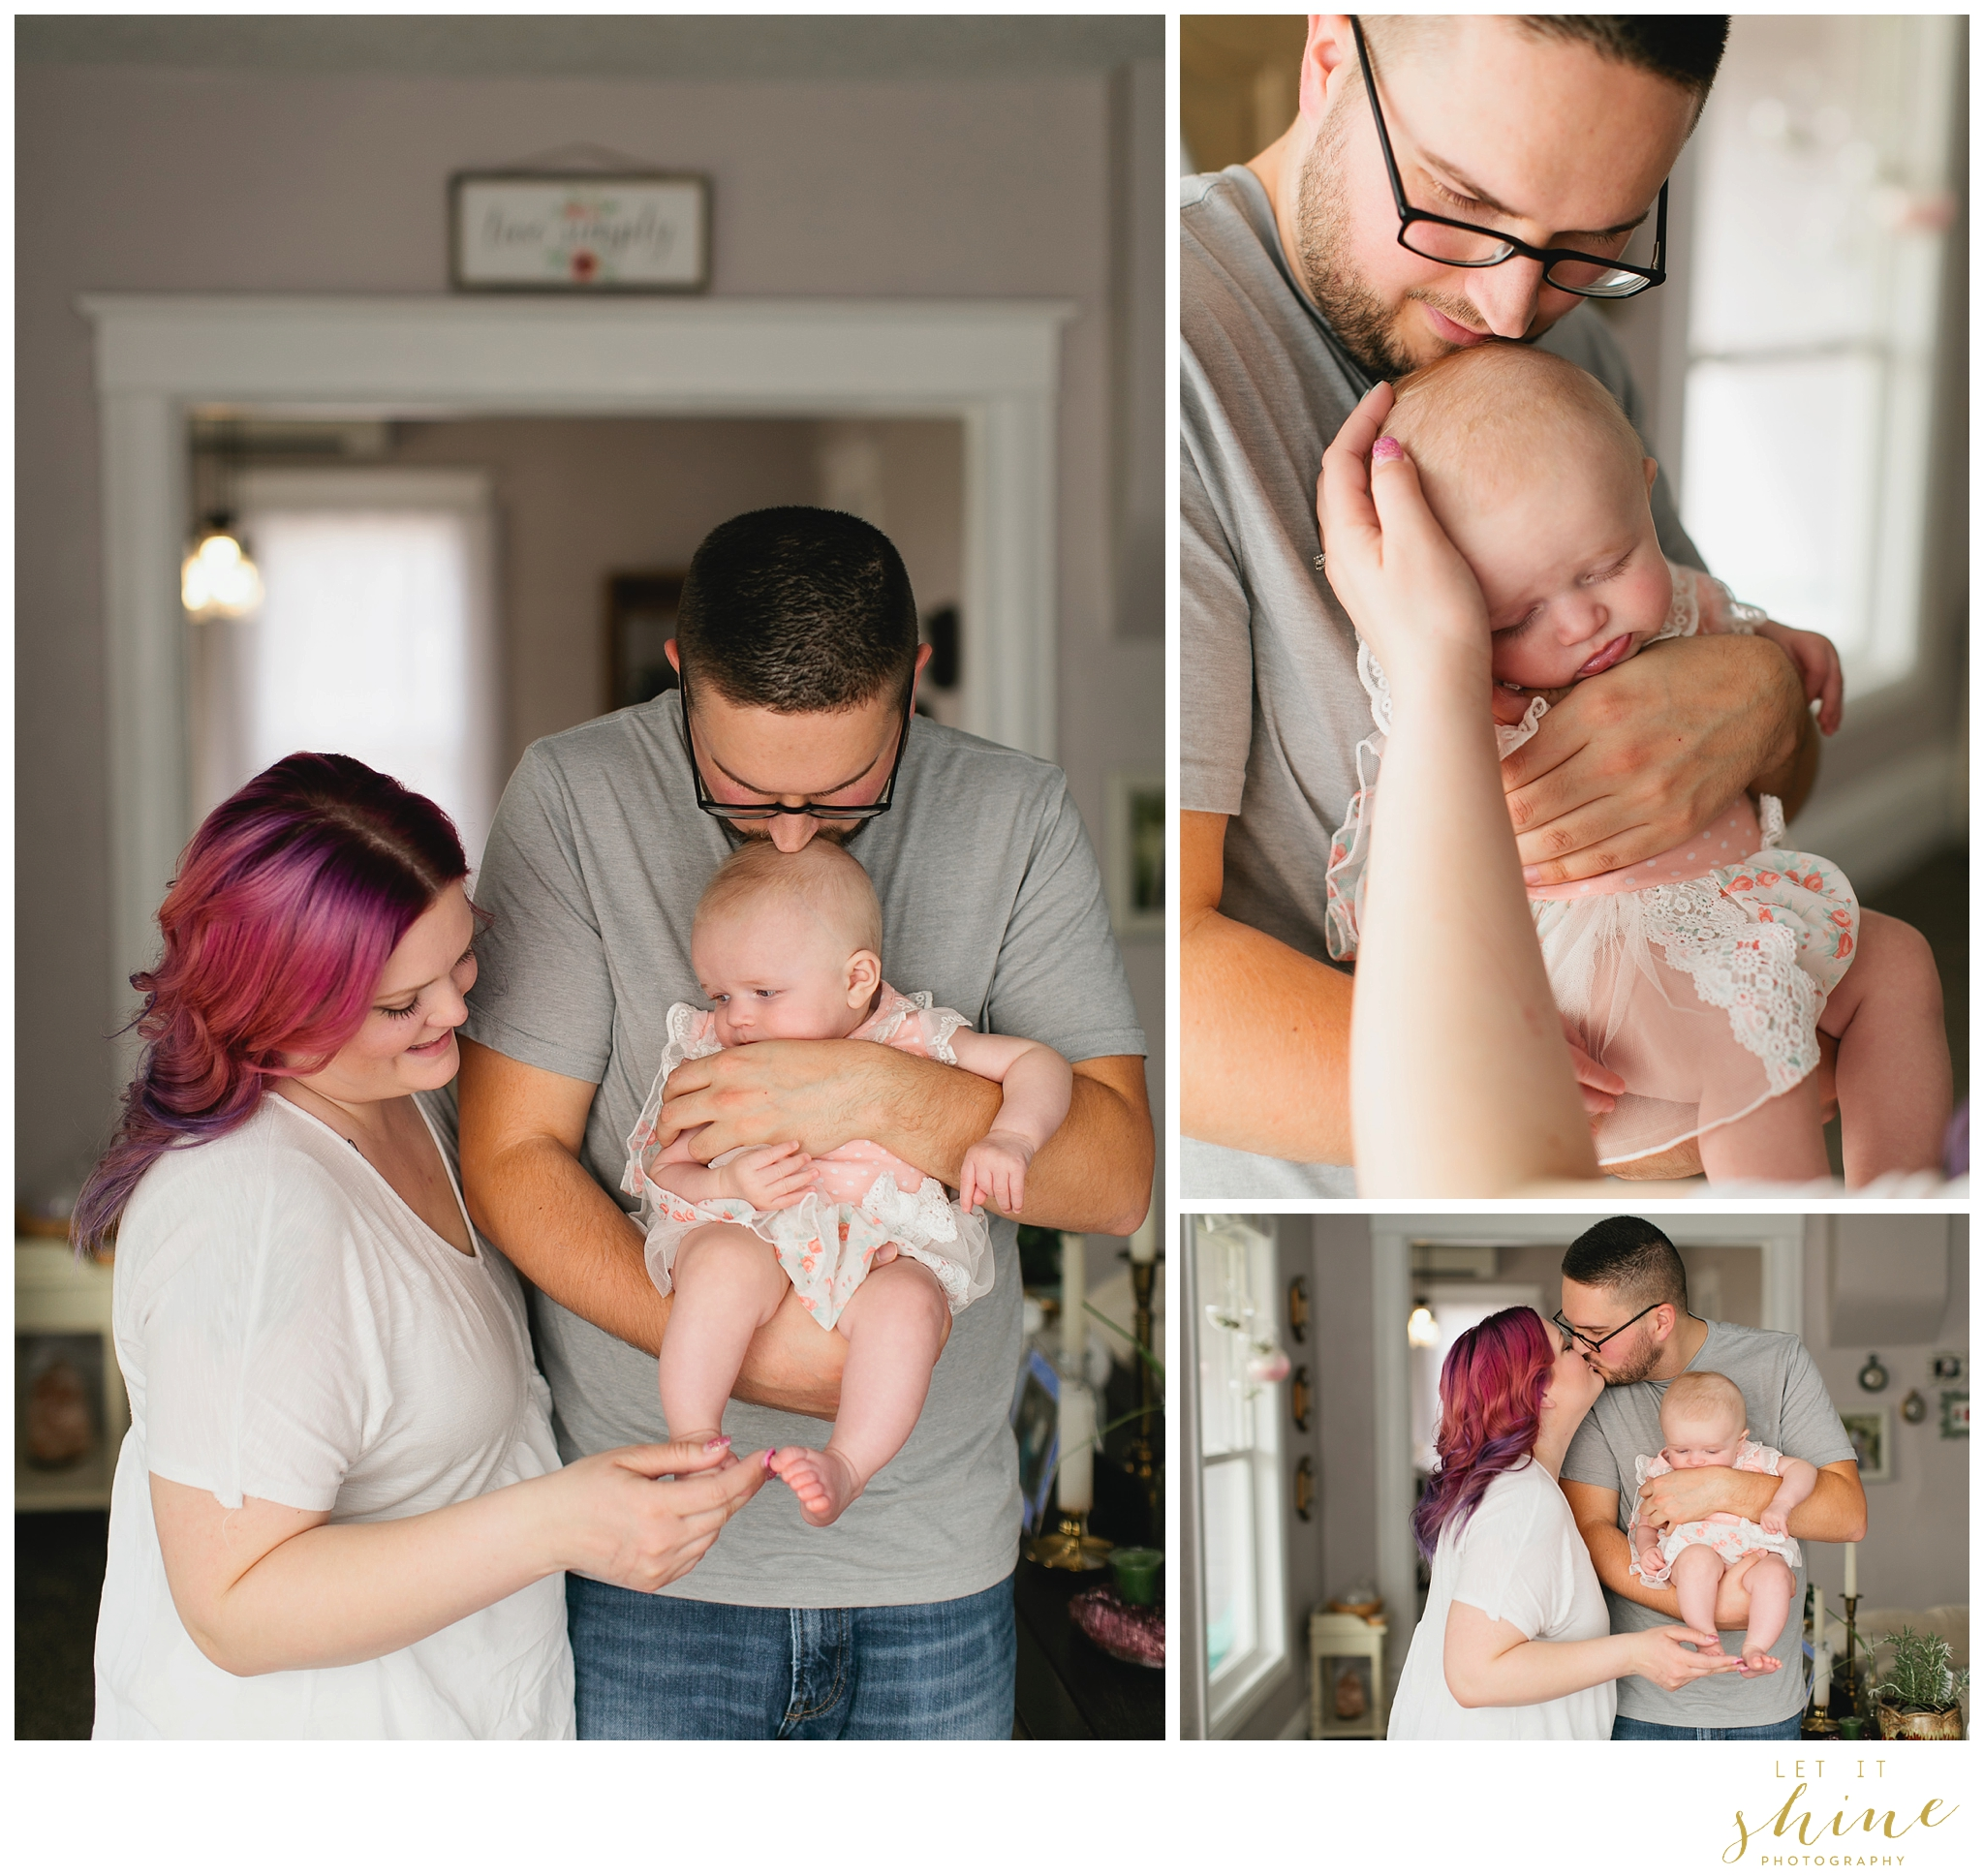 Lifestyle Family In Home Session Photographer Woodford-7179.jpg